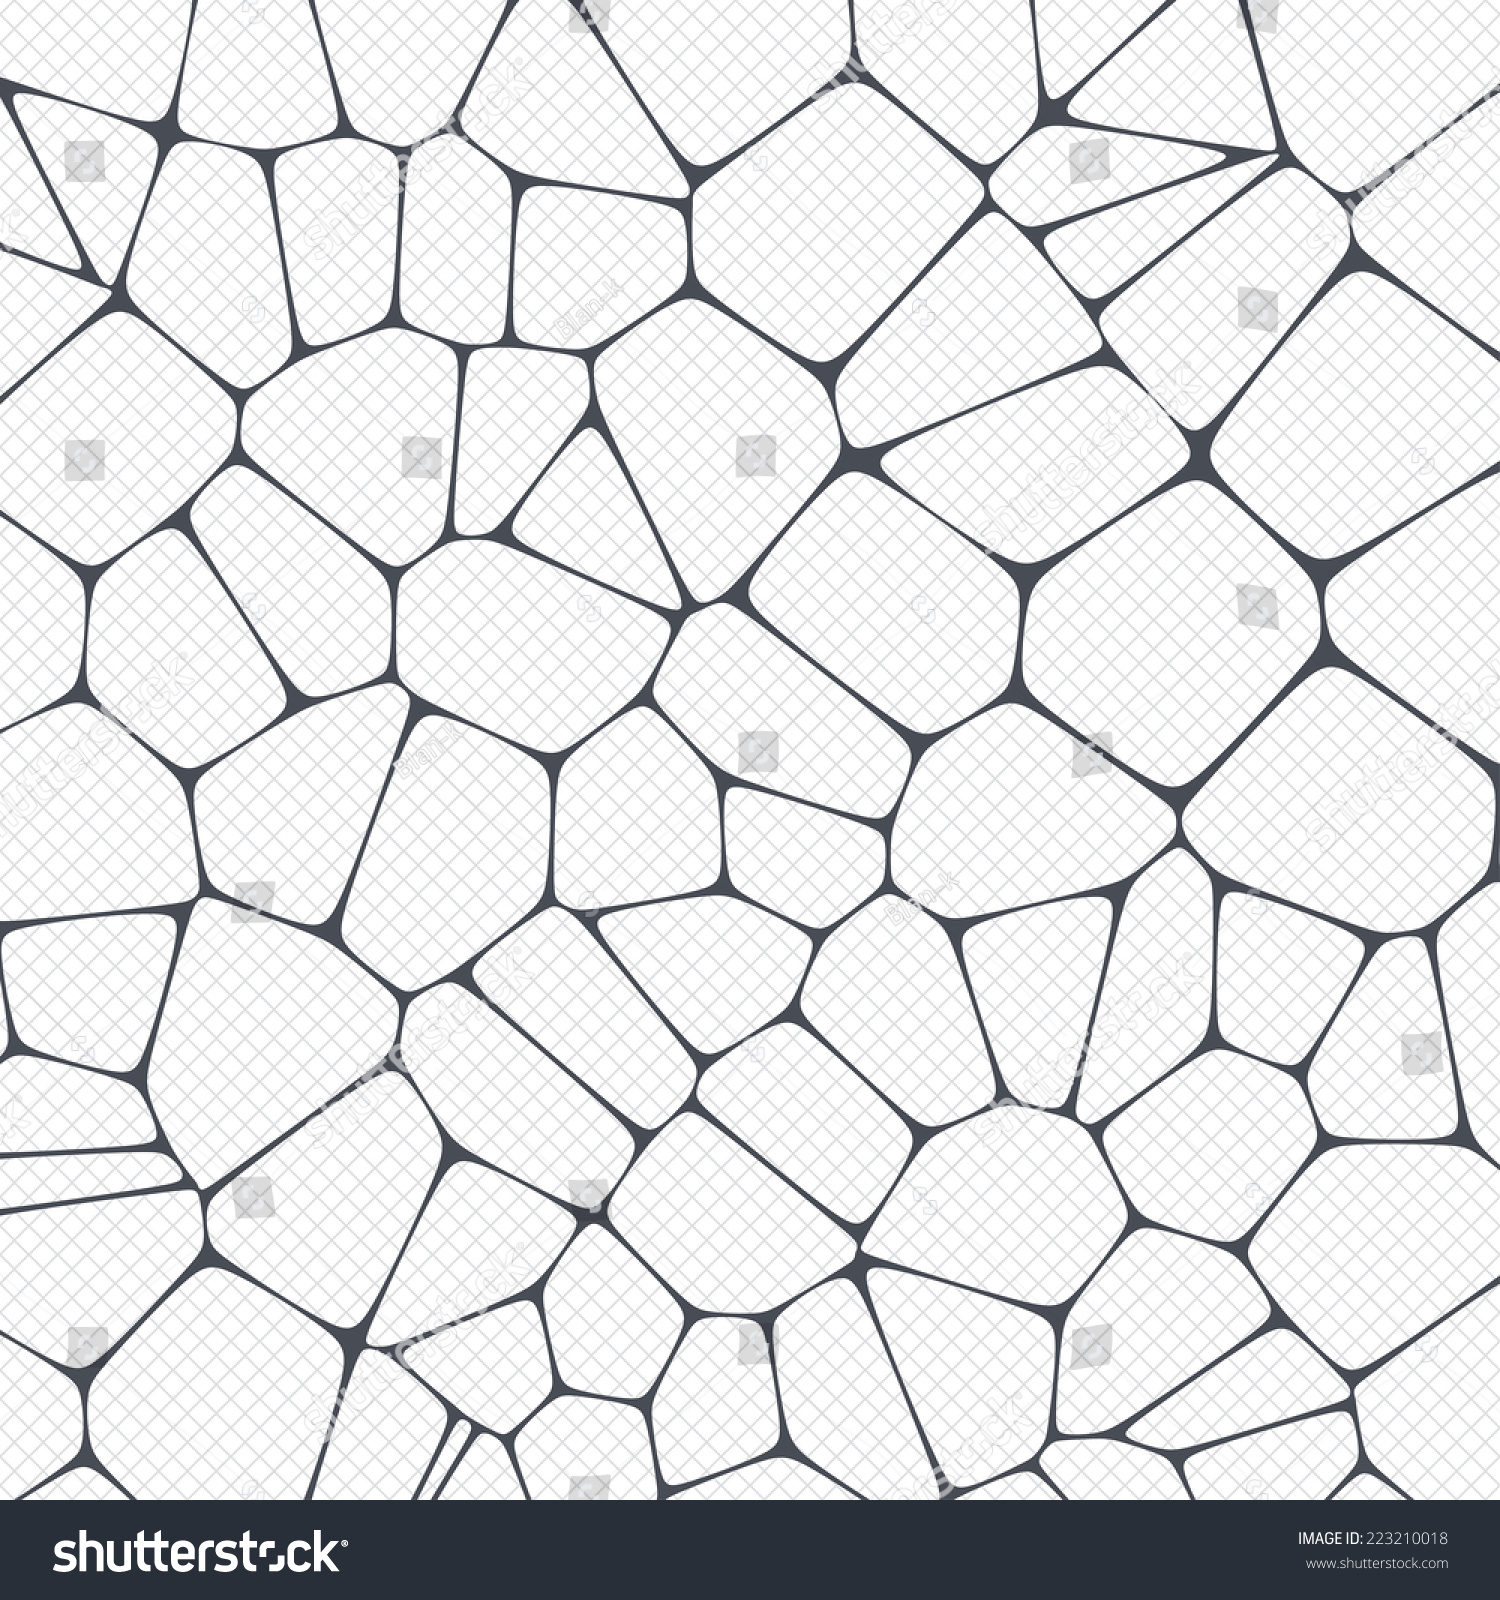 Line Texture Vector : Stained glass background abstract mosaic tiles stock